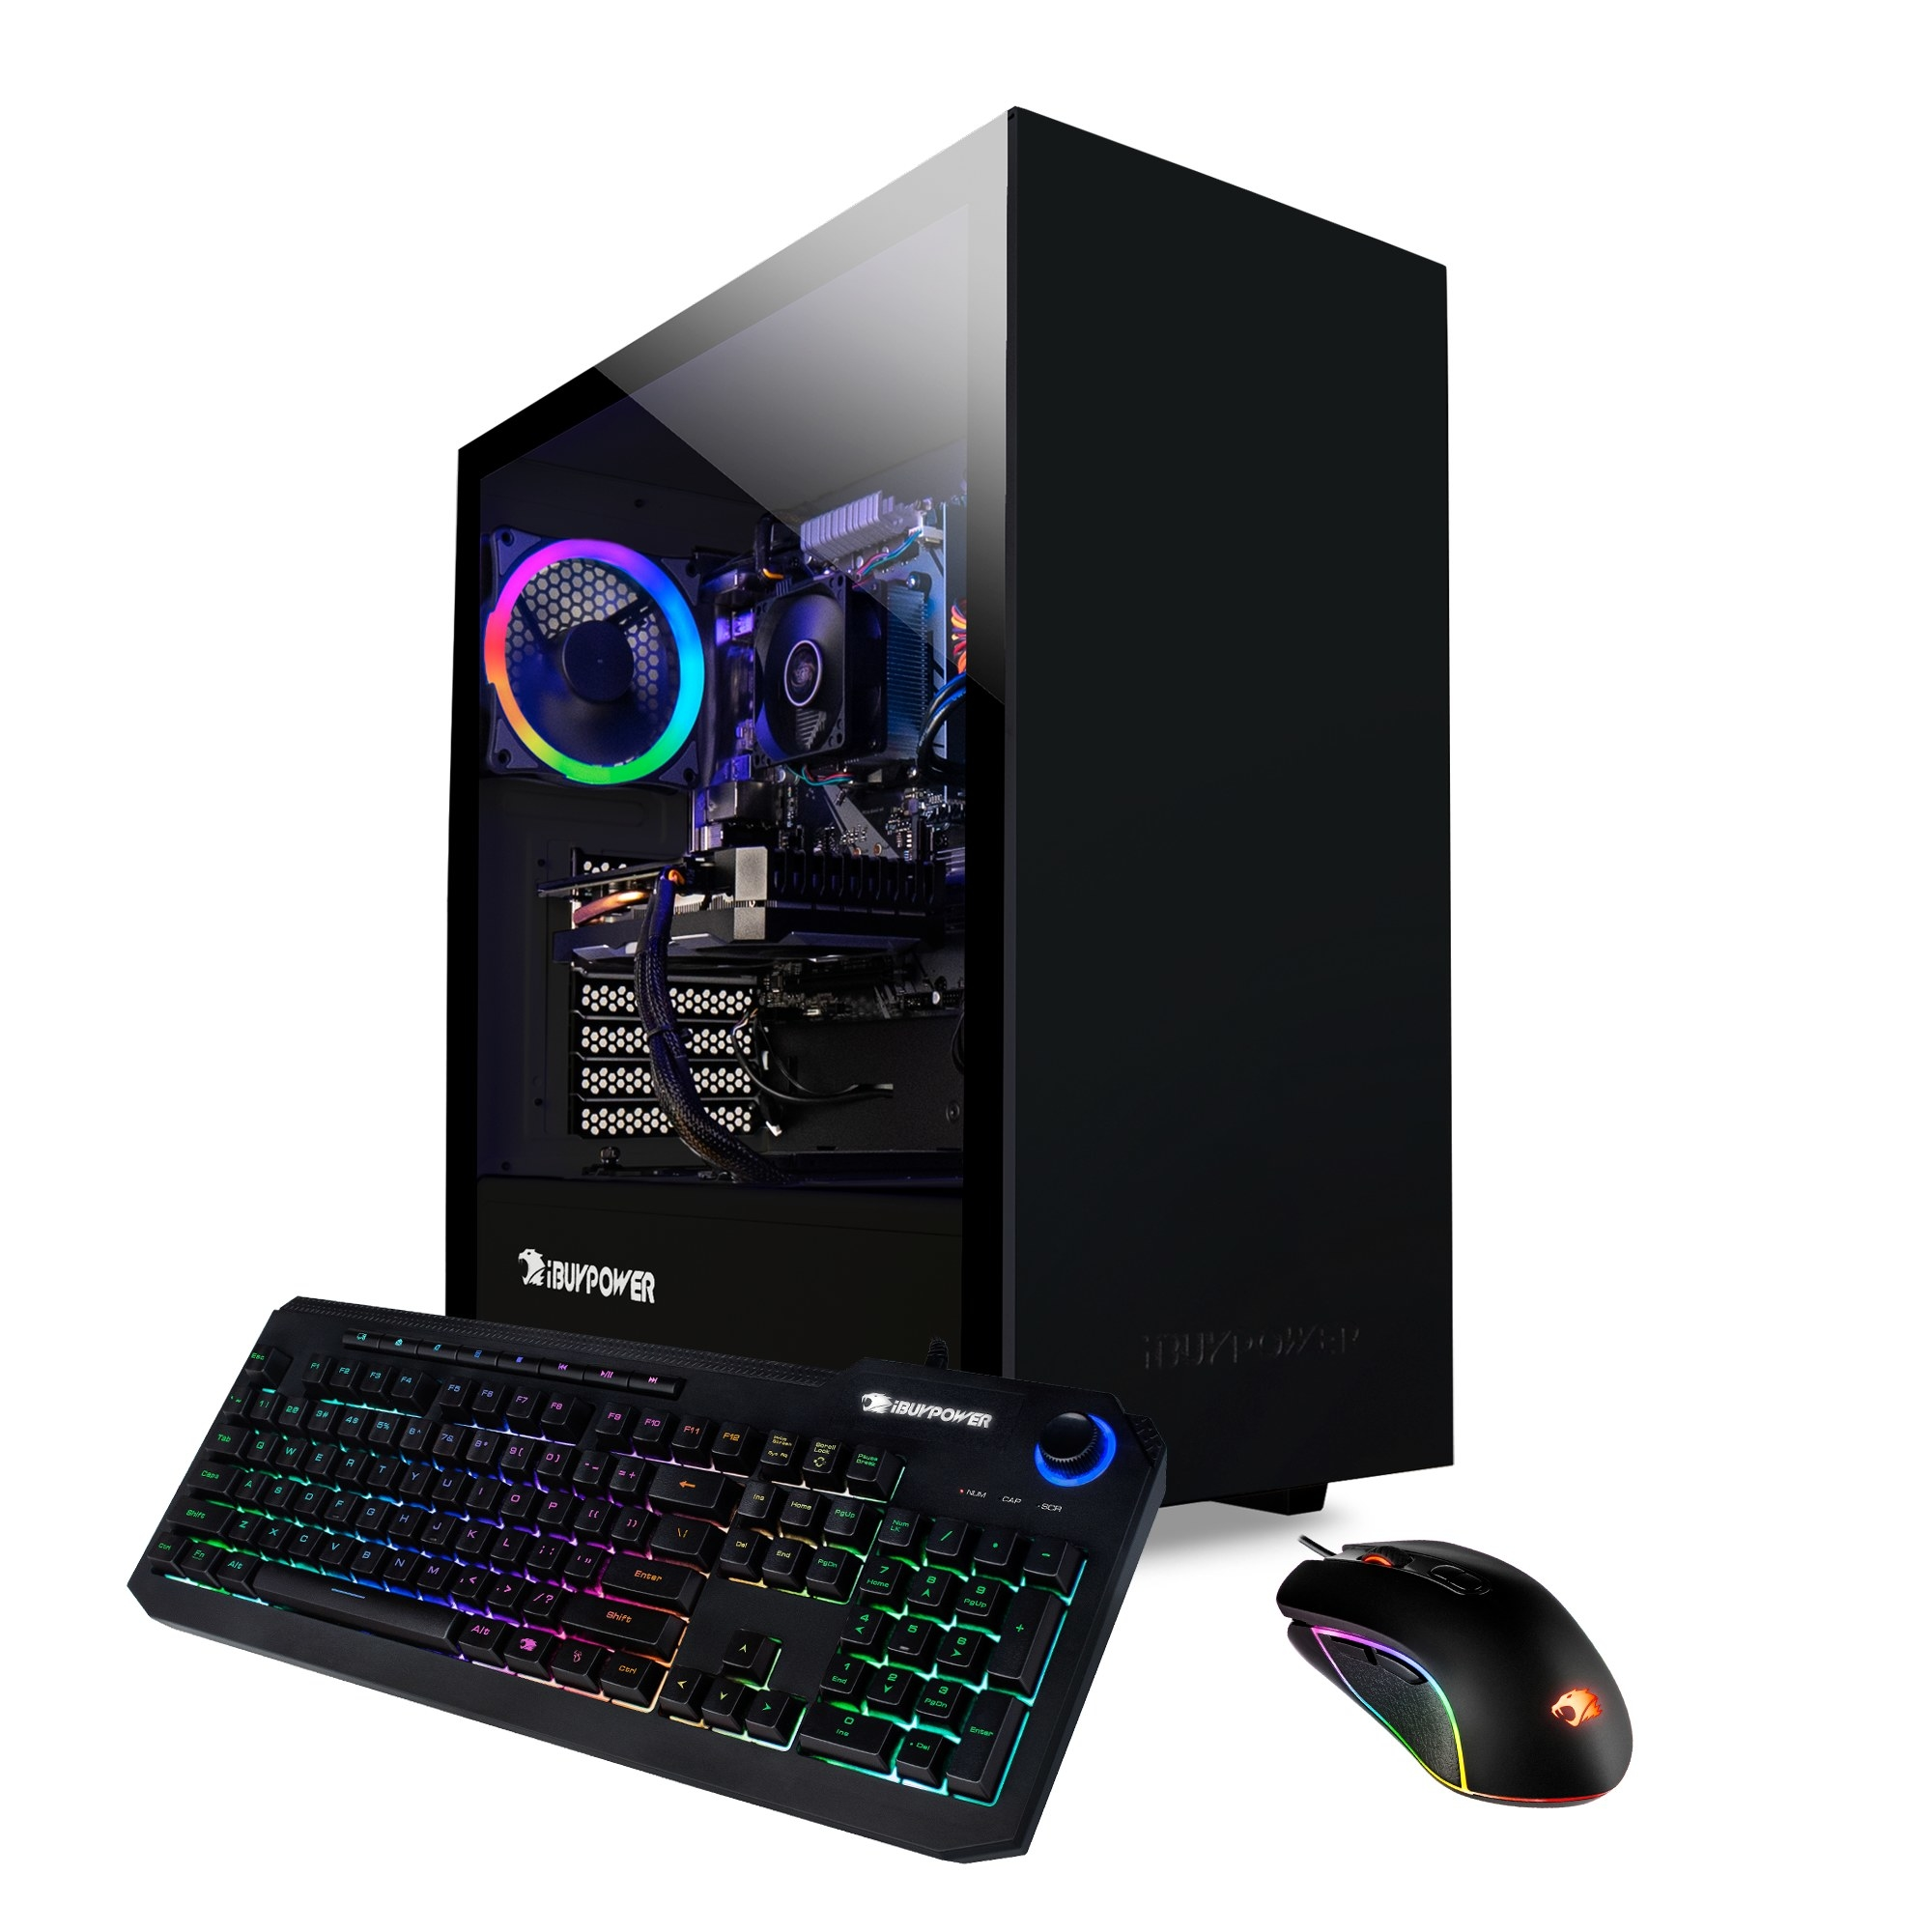 The black PC tower and keyboard with rainbow lights.